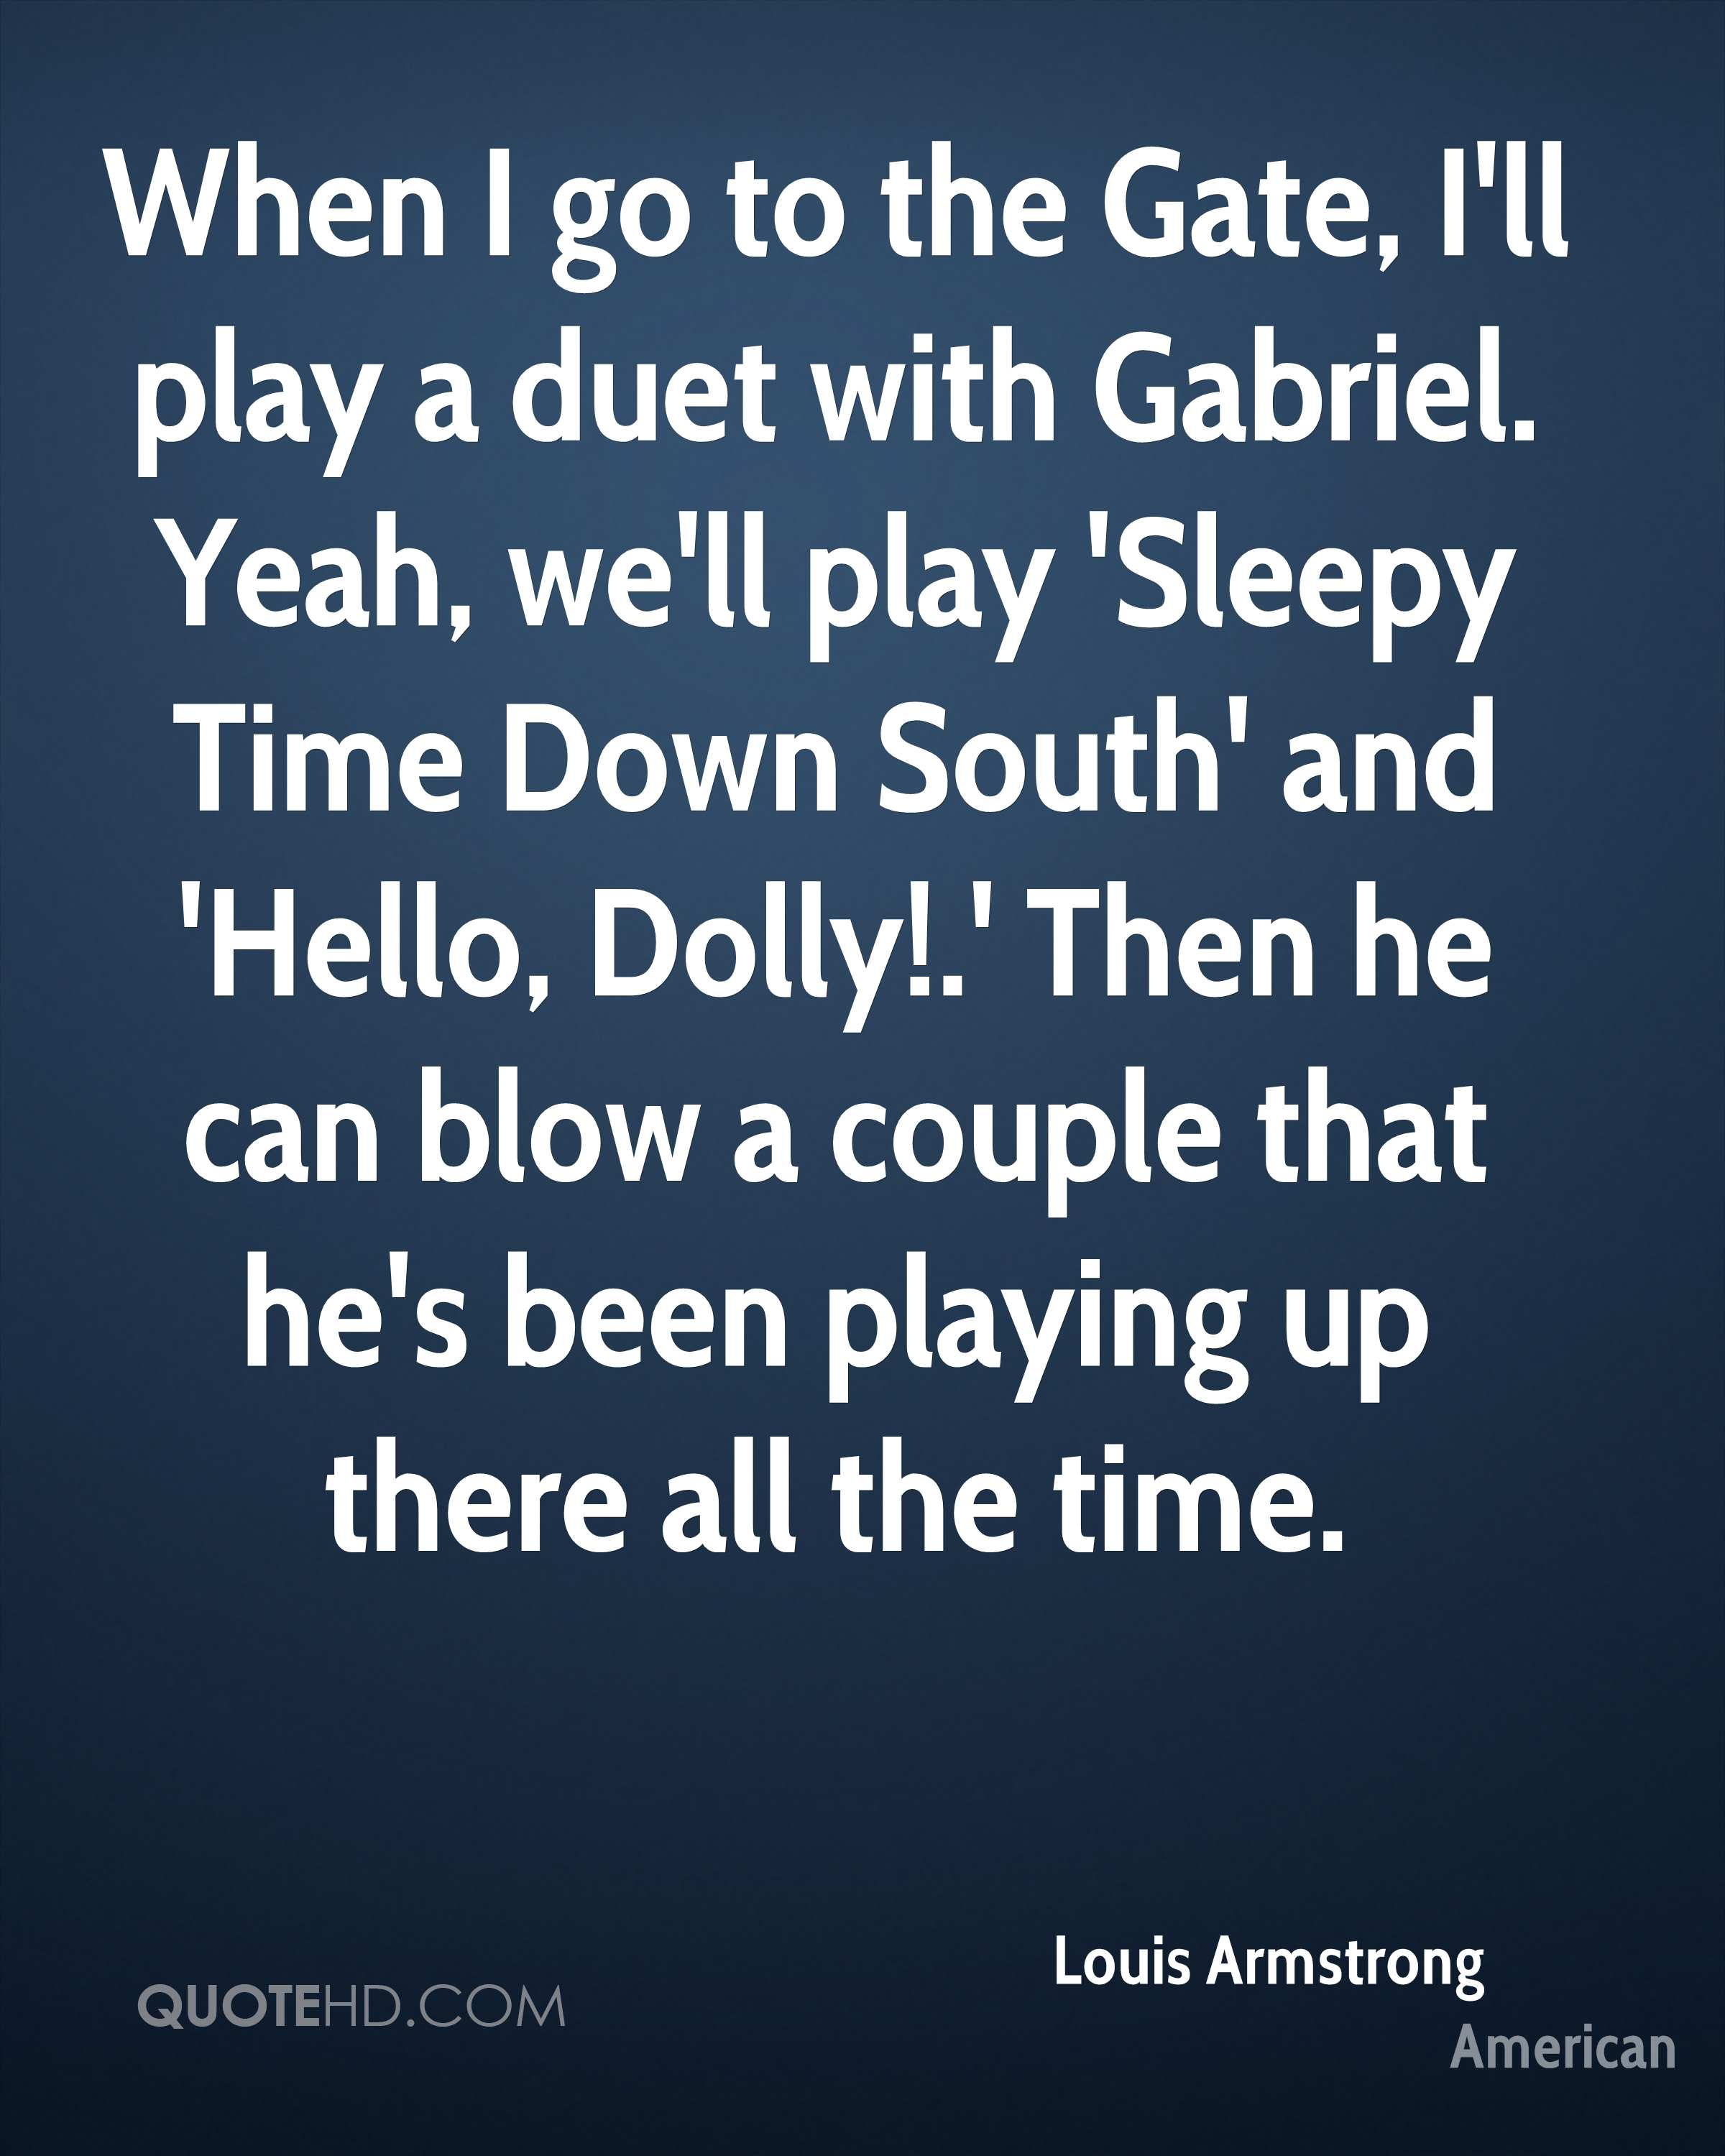 When I go to the Gate, I'll play a duet with Gabriel. Yeah, we'll play 'Sleepy Time Down South' and 'Hello, Dolly!.' Then he can blow a couple that he's been playing up there all the time.